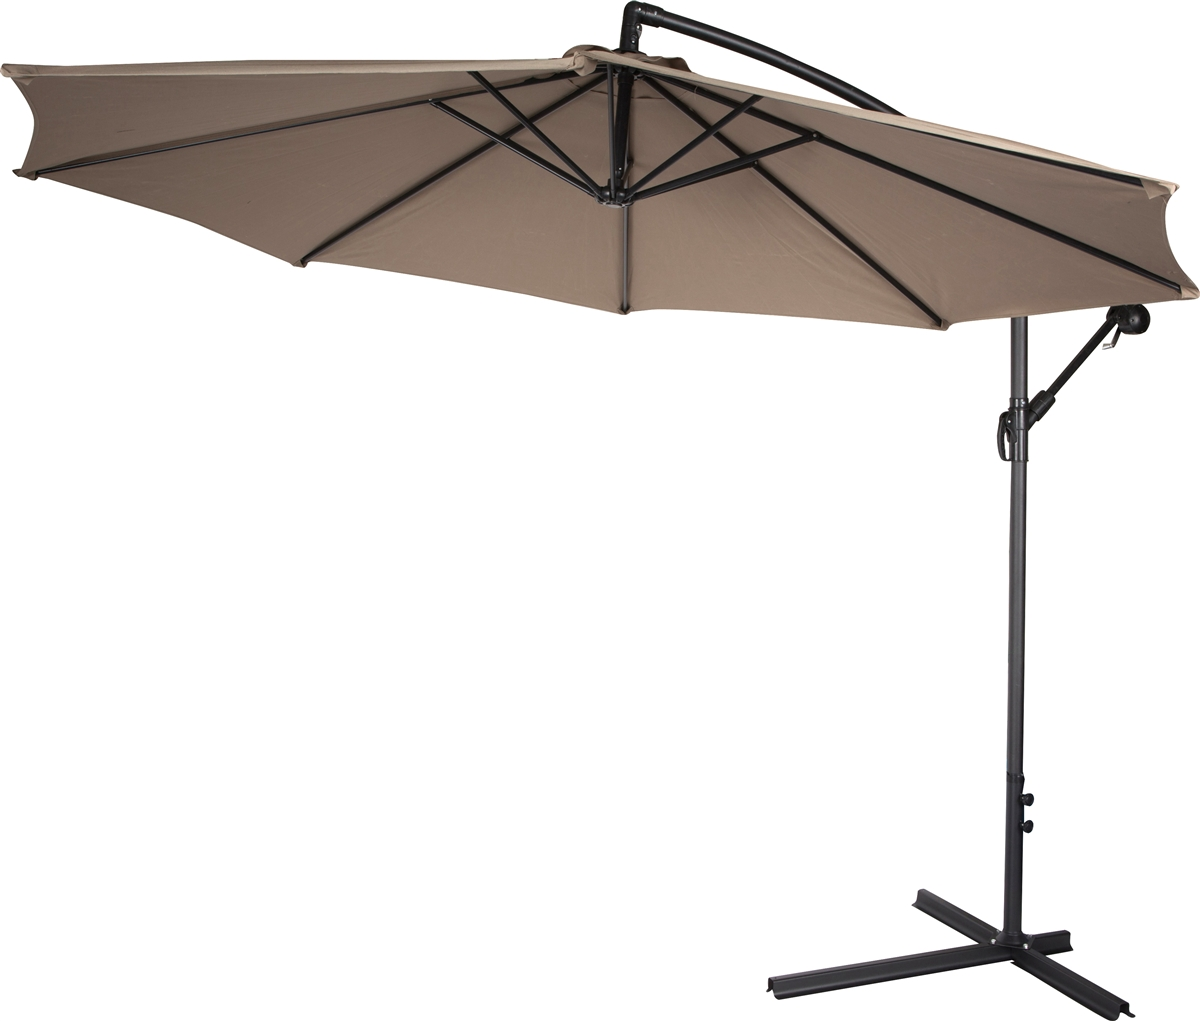 10 deluxe polyester tan offset patio umbrella by trademark innovations